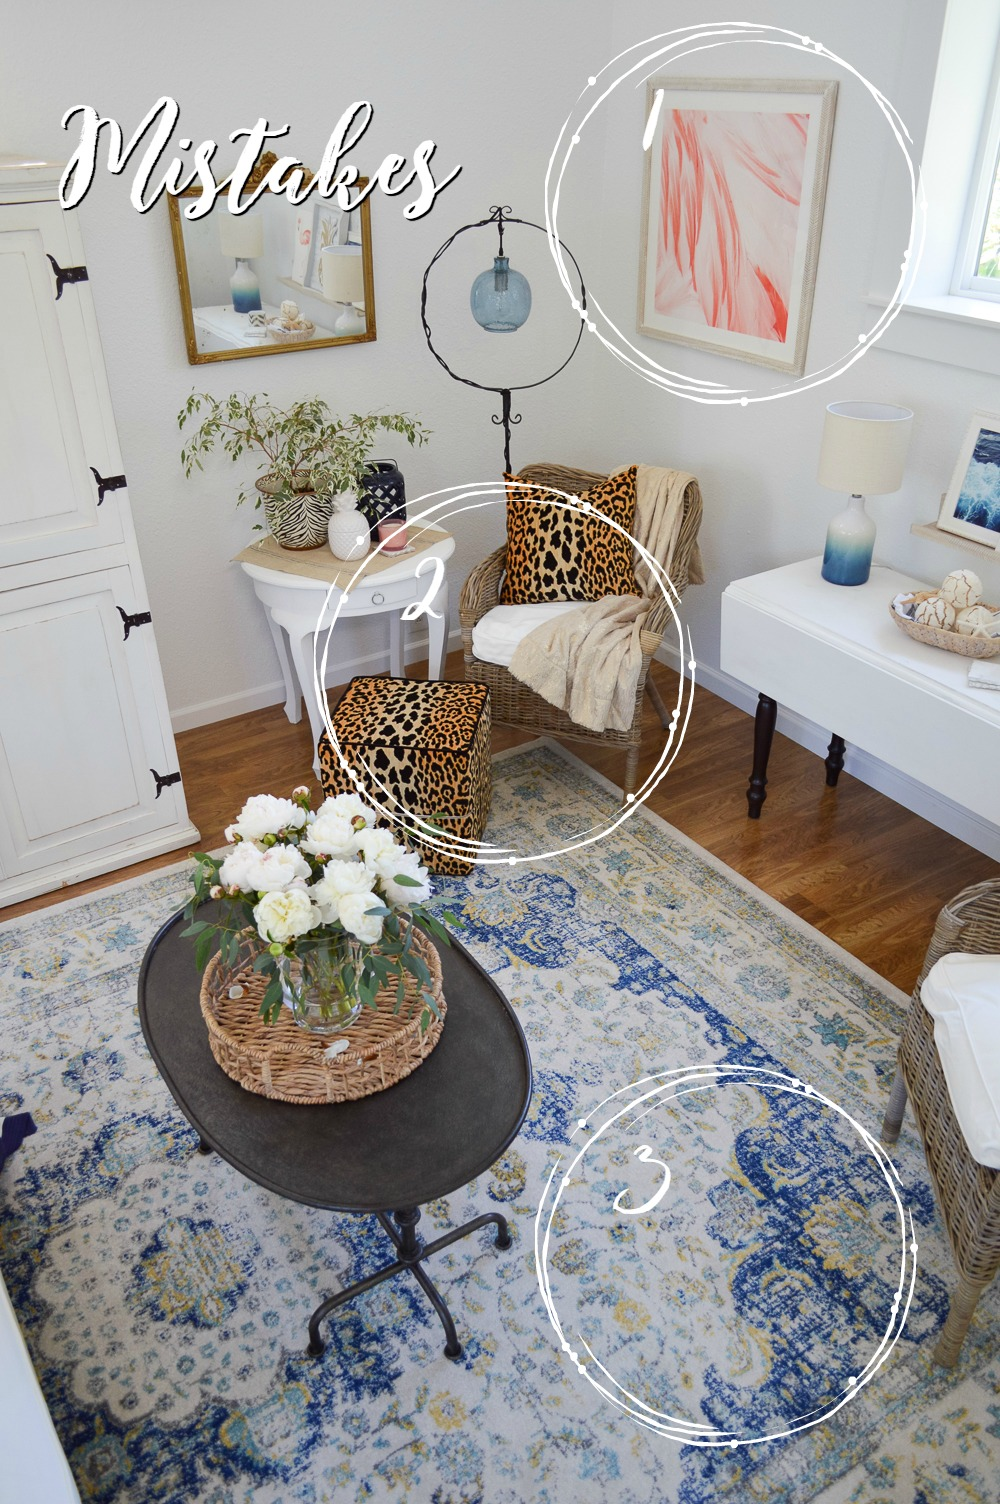 BEFORE New Home Decorating Tips and Ideas - Mistakes, and how to get that relaxed cottage farmhouse style. Great room/living room, take two. #sponsored with Better Homes & Gardens